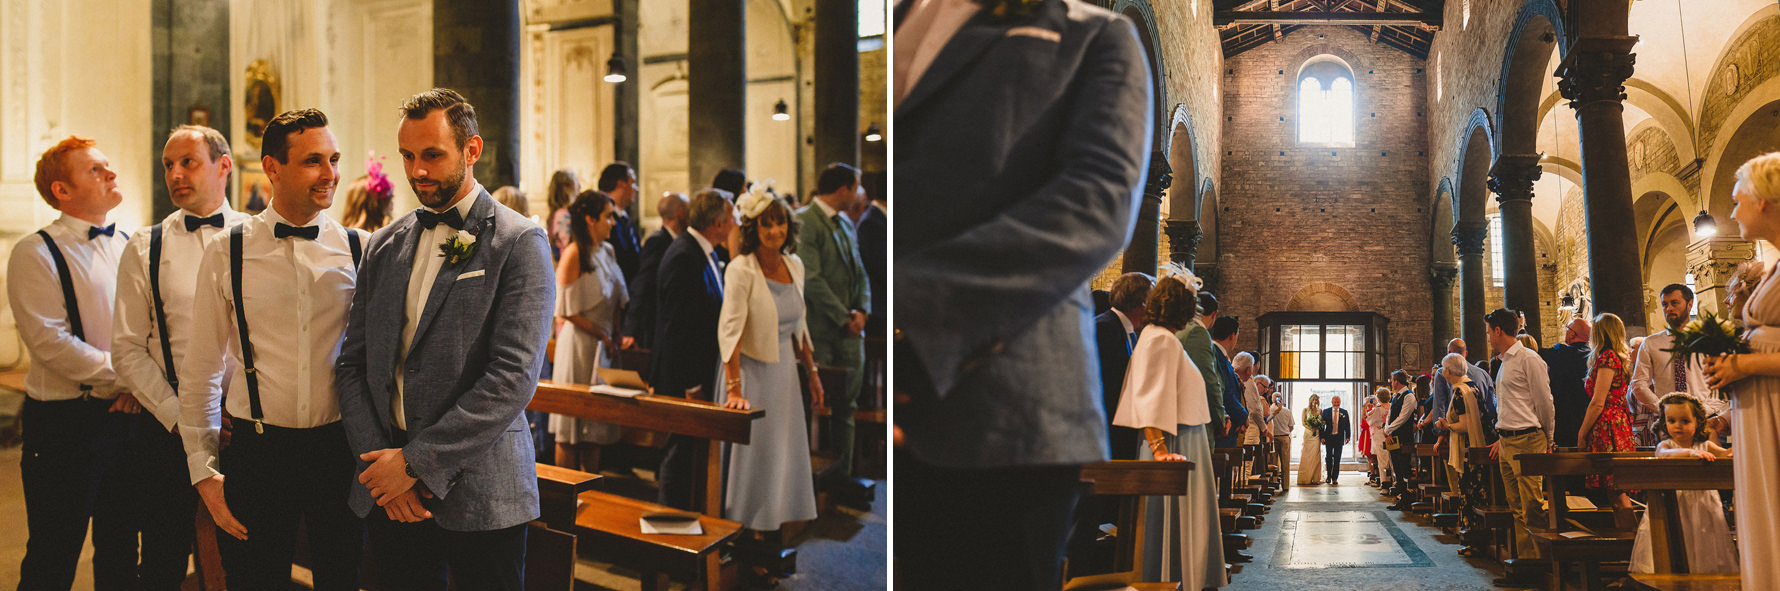 Livio-Lacurre-italian-wedding-photographer-in-florence